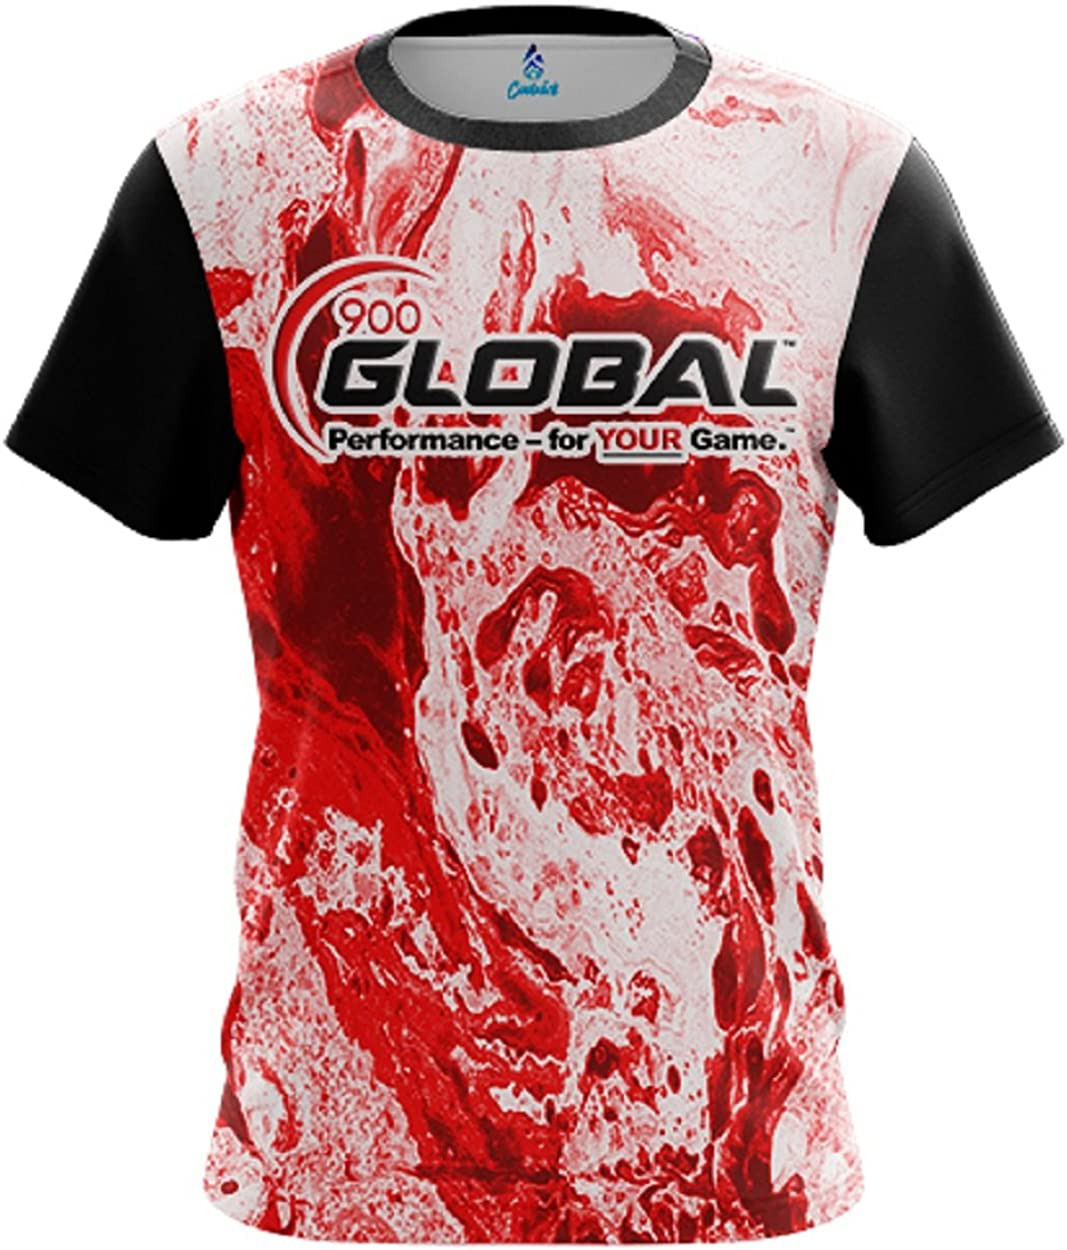 CoolWick 900 Global Mens Marble Red Bowling Jersey